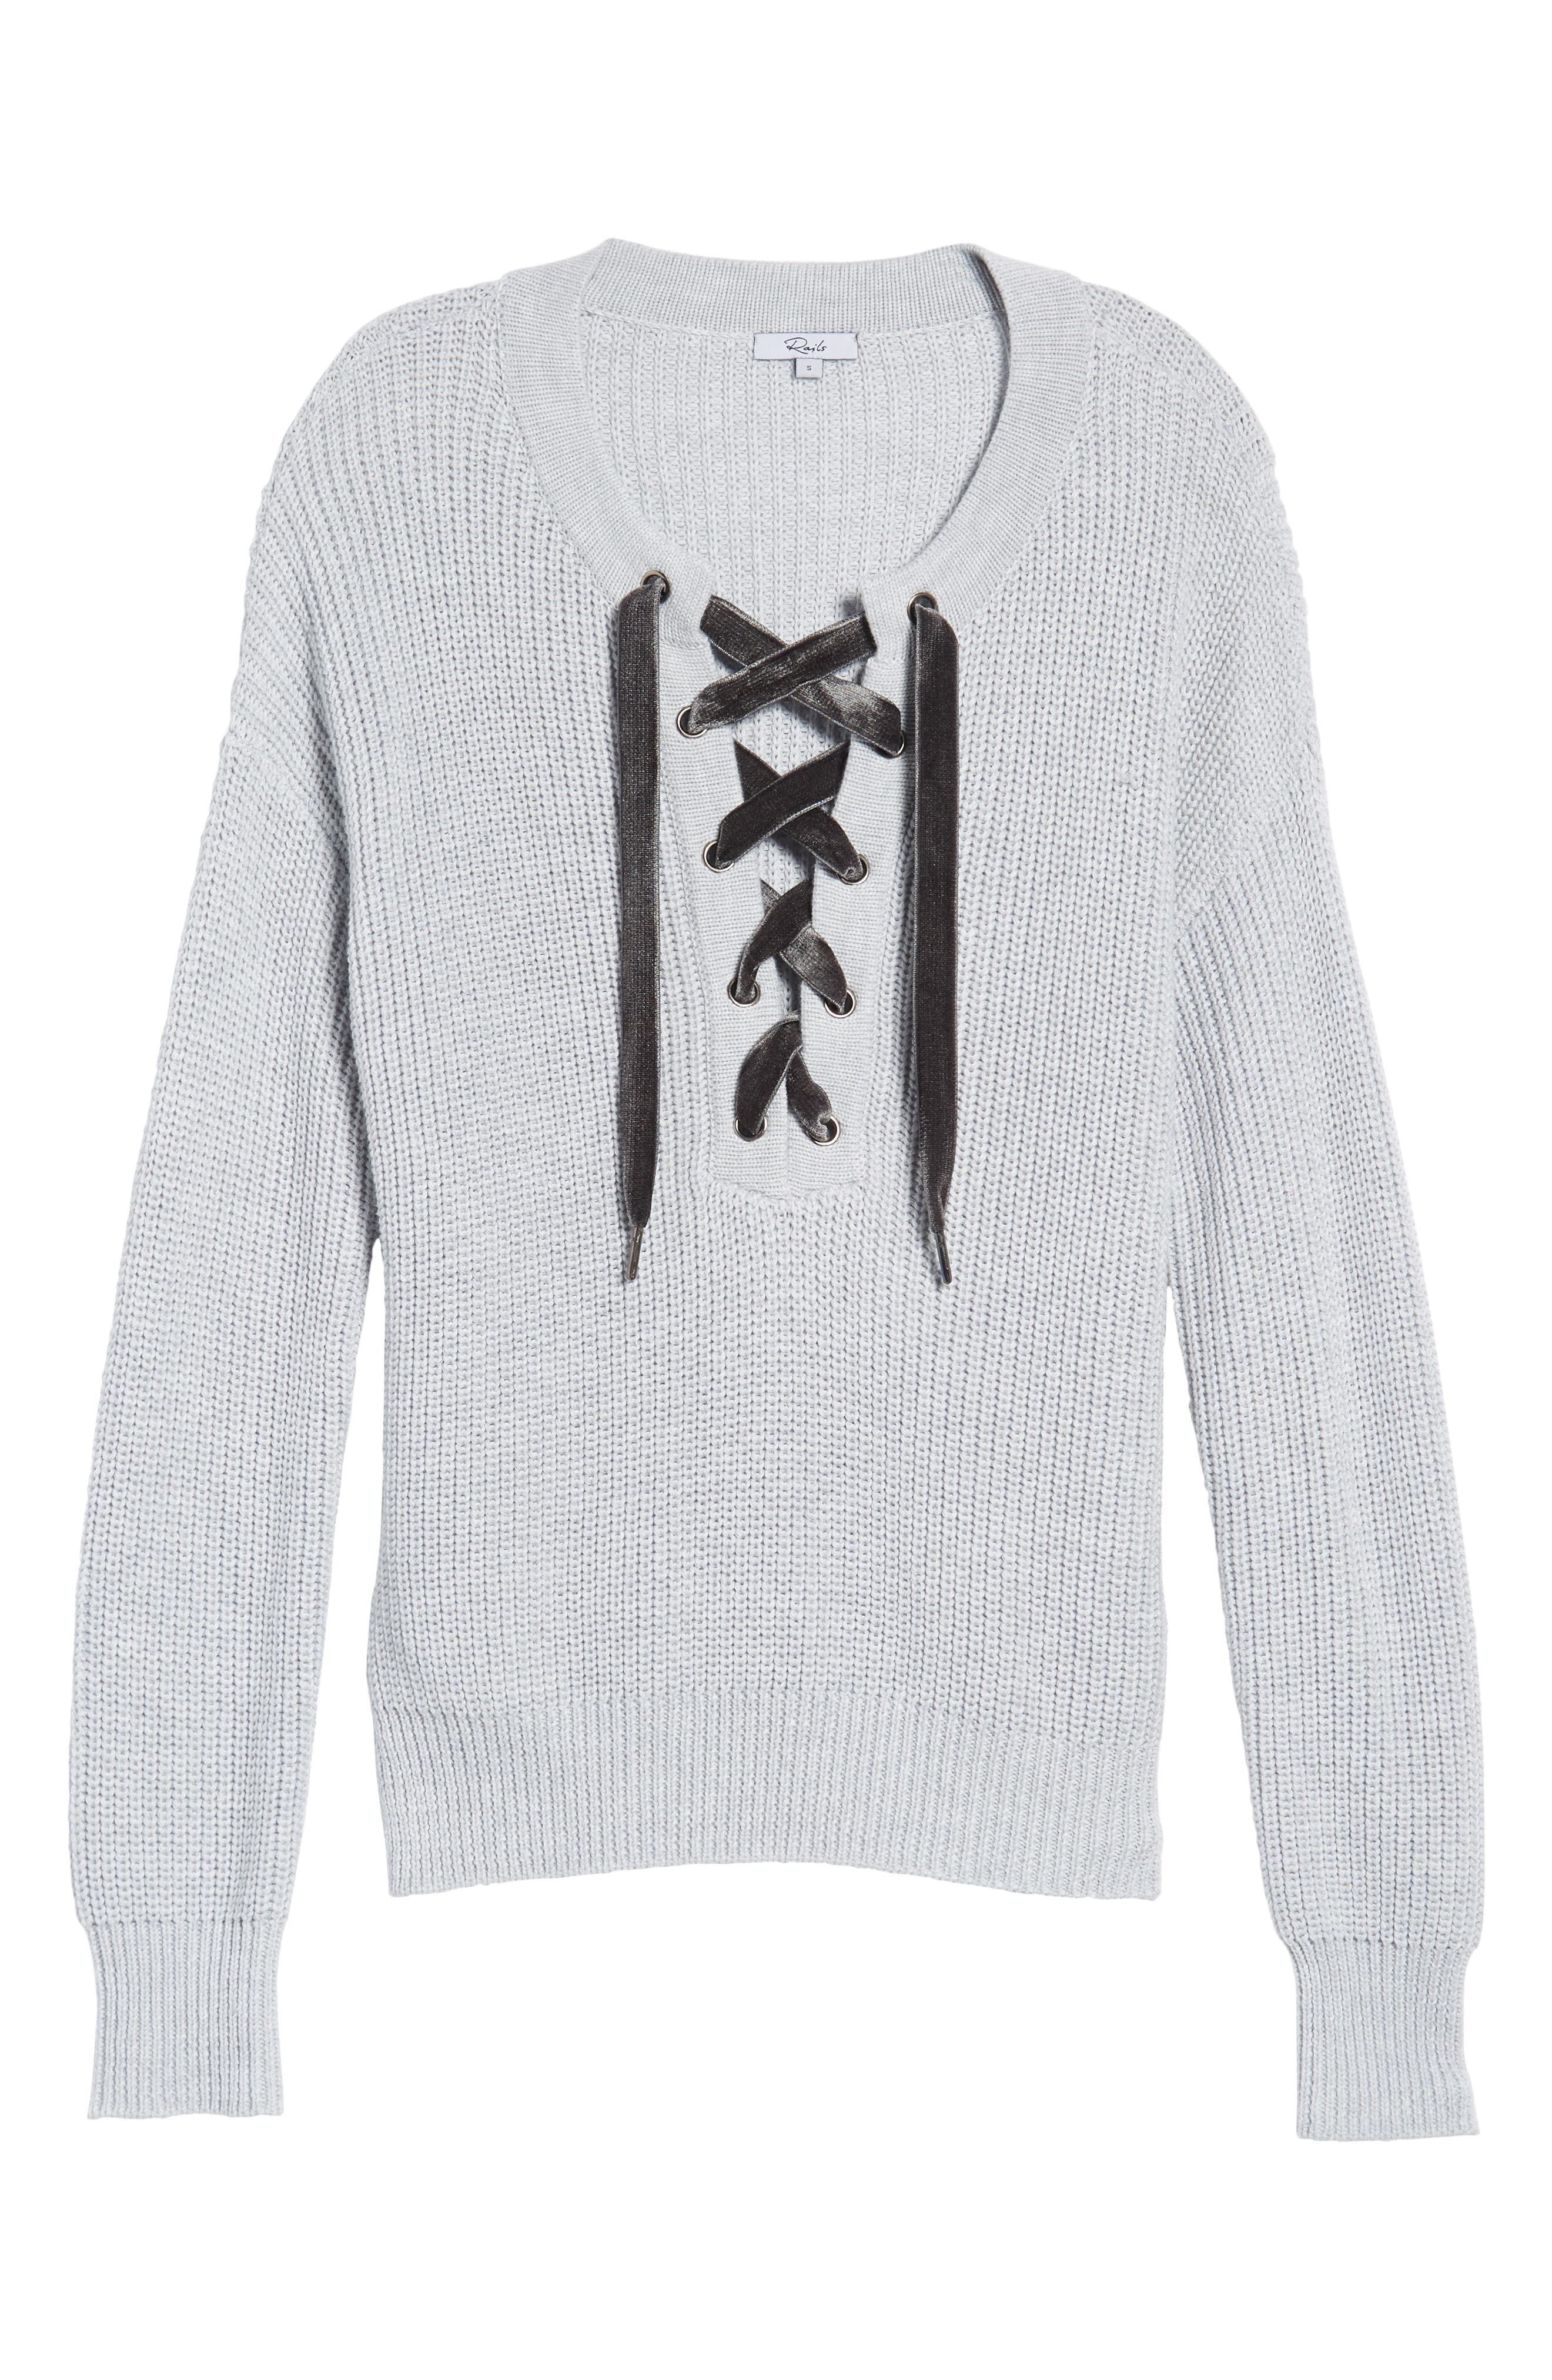 Olivia Lace-Up Sweater,                             Alternate thumbnail 7, color,                             HEATHER GREY